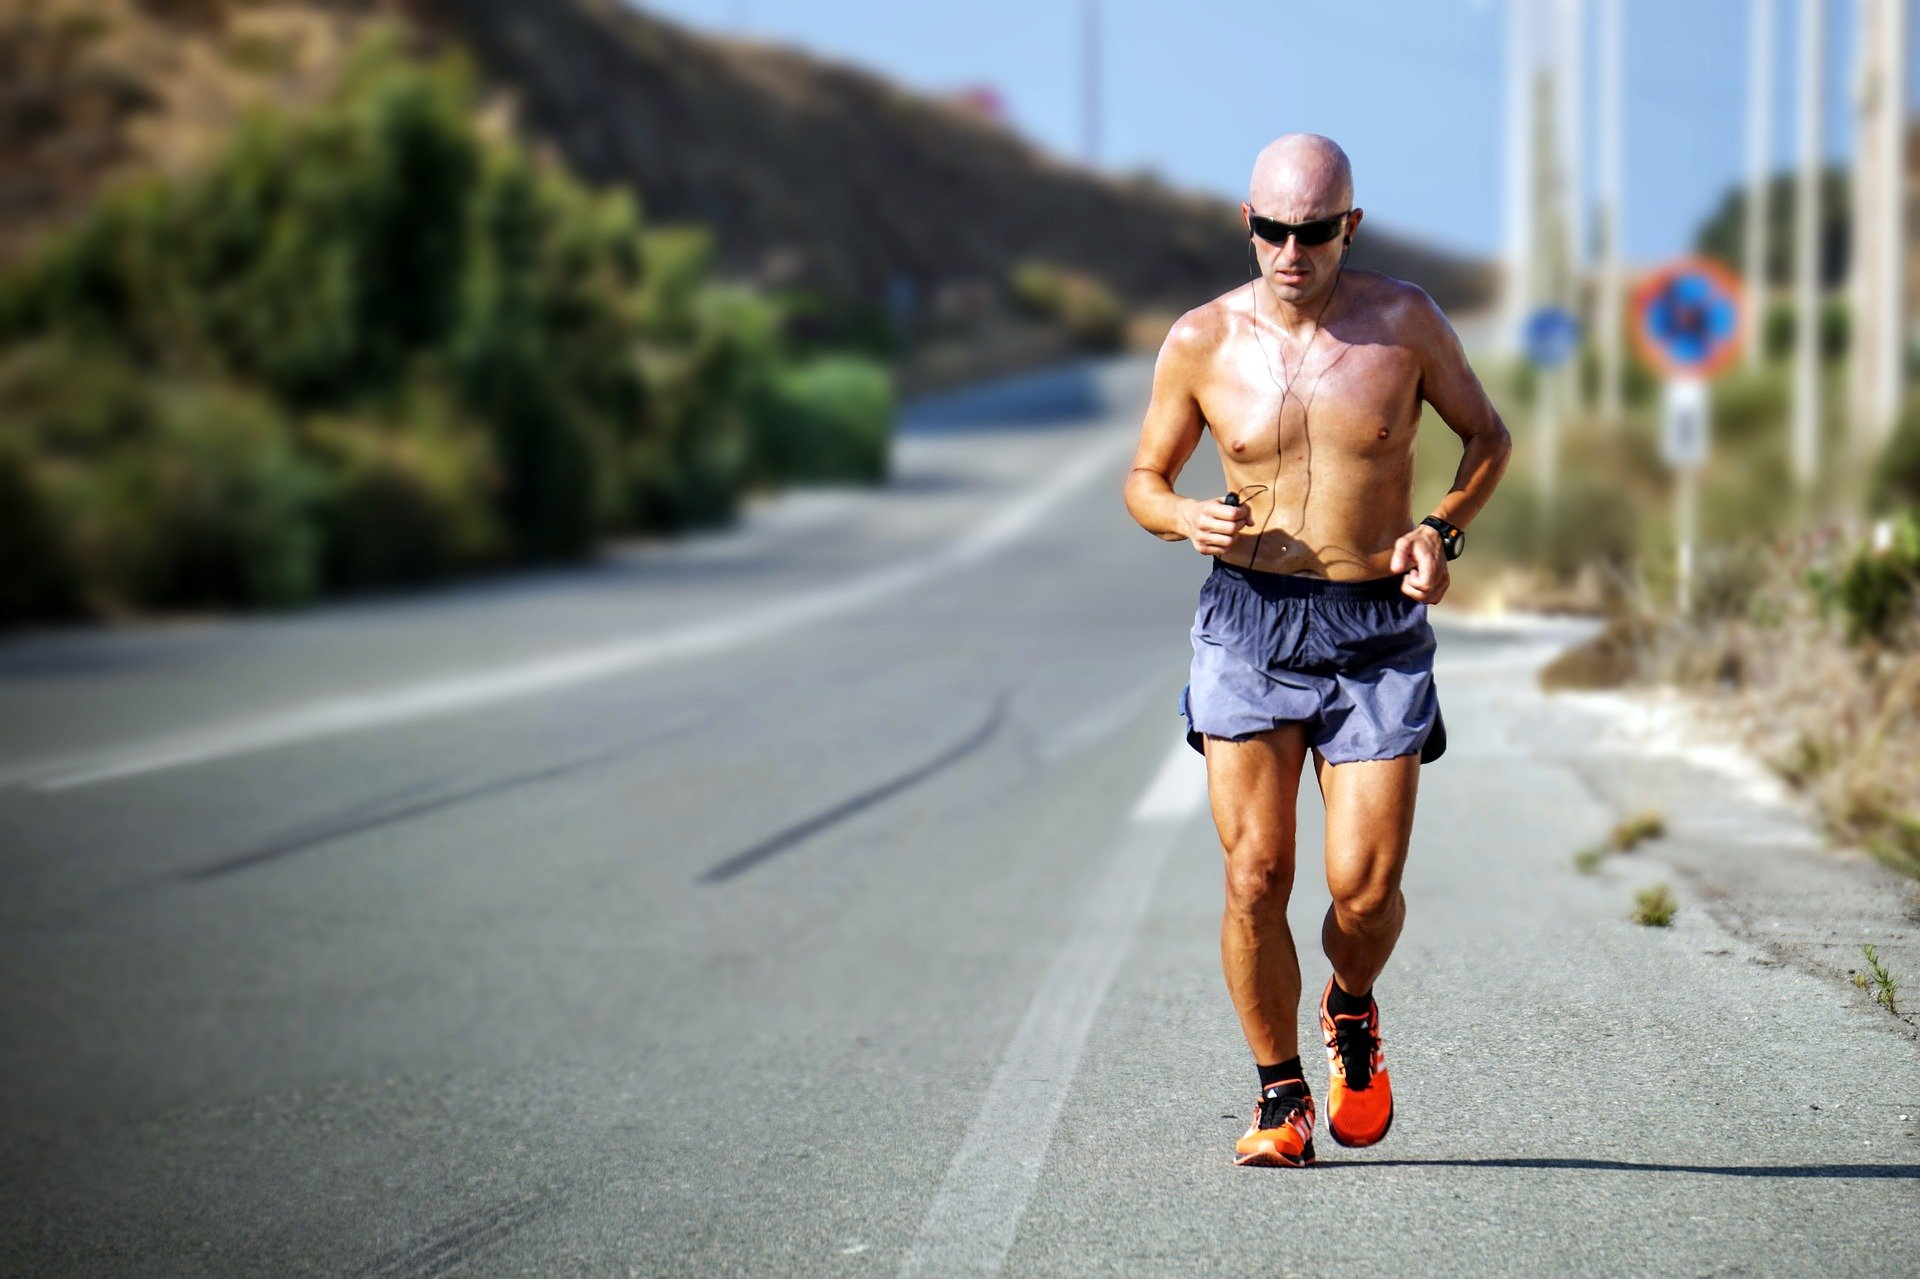 how much exercise should one do per week